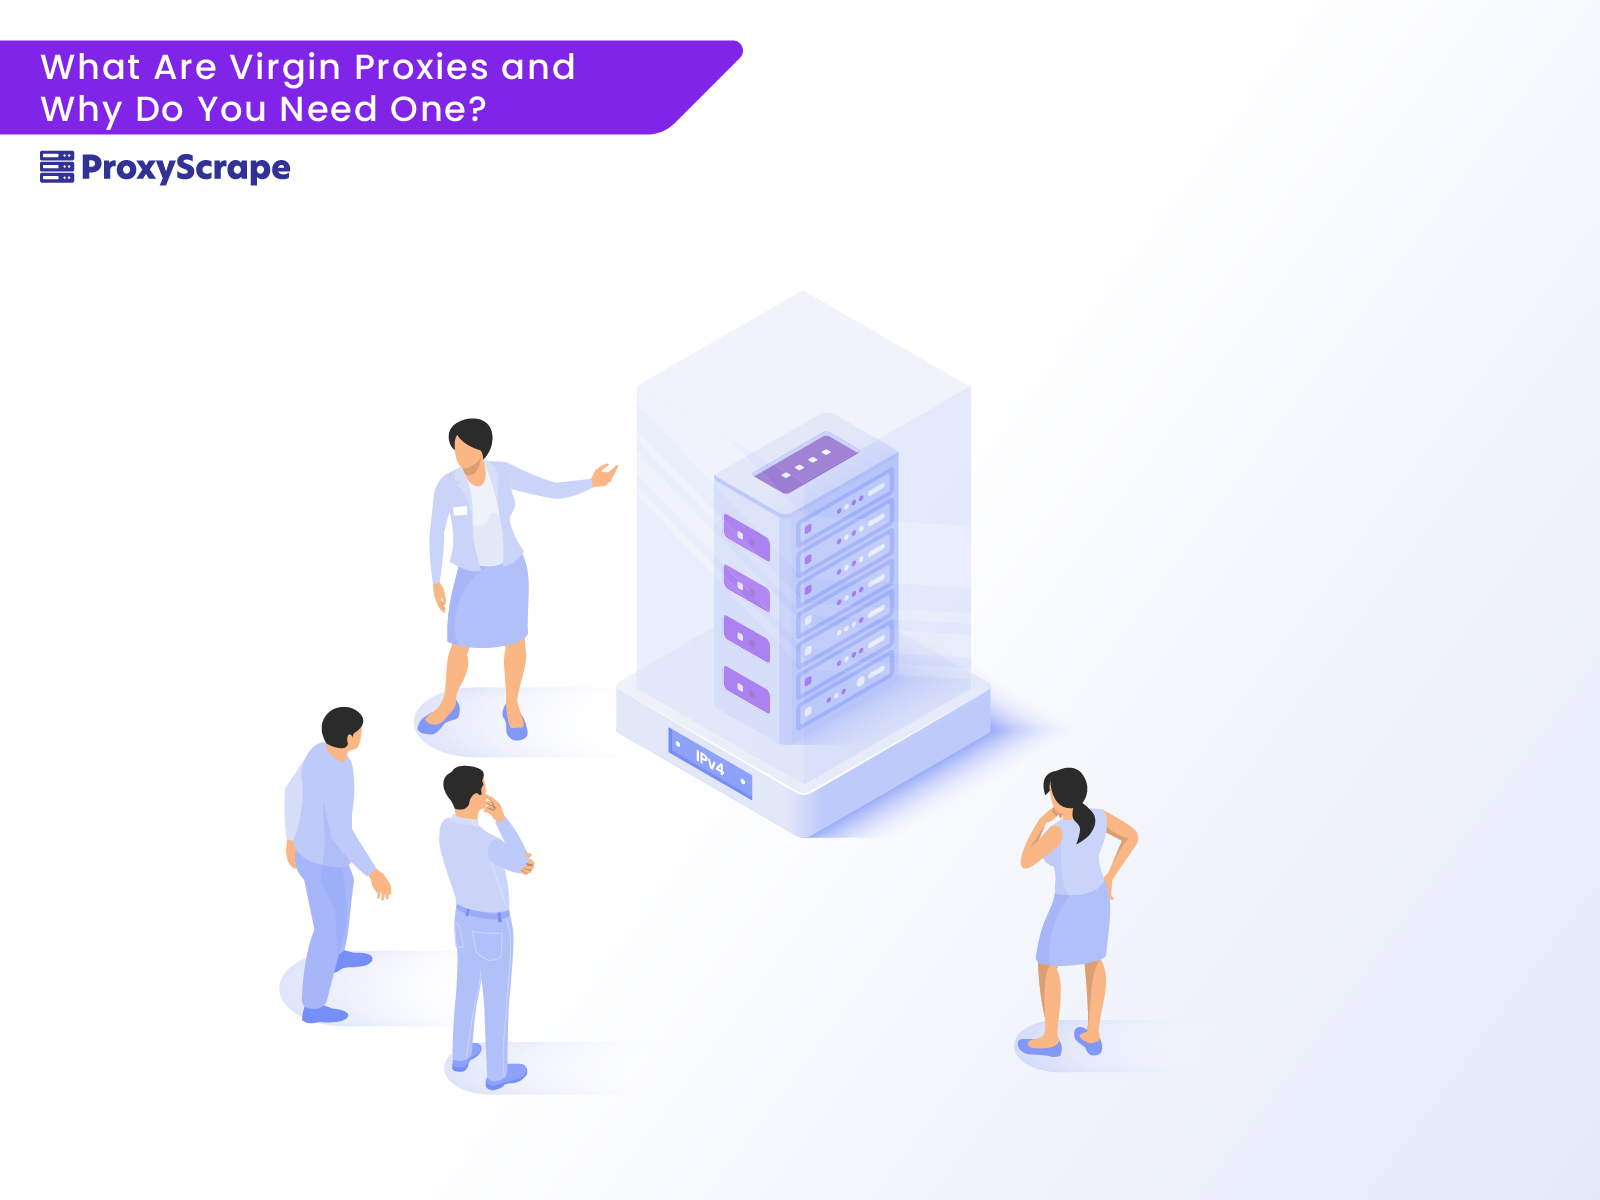 What Are Virgin Proxies and Why Do You Need One?